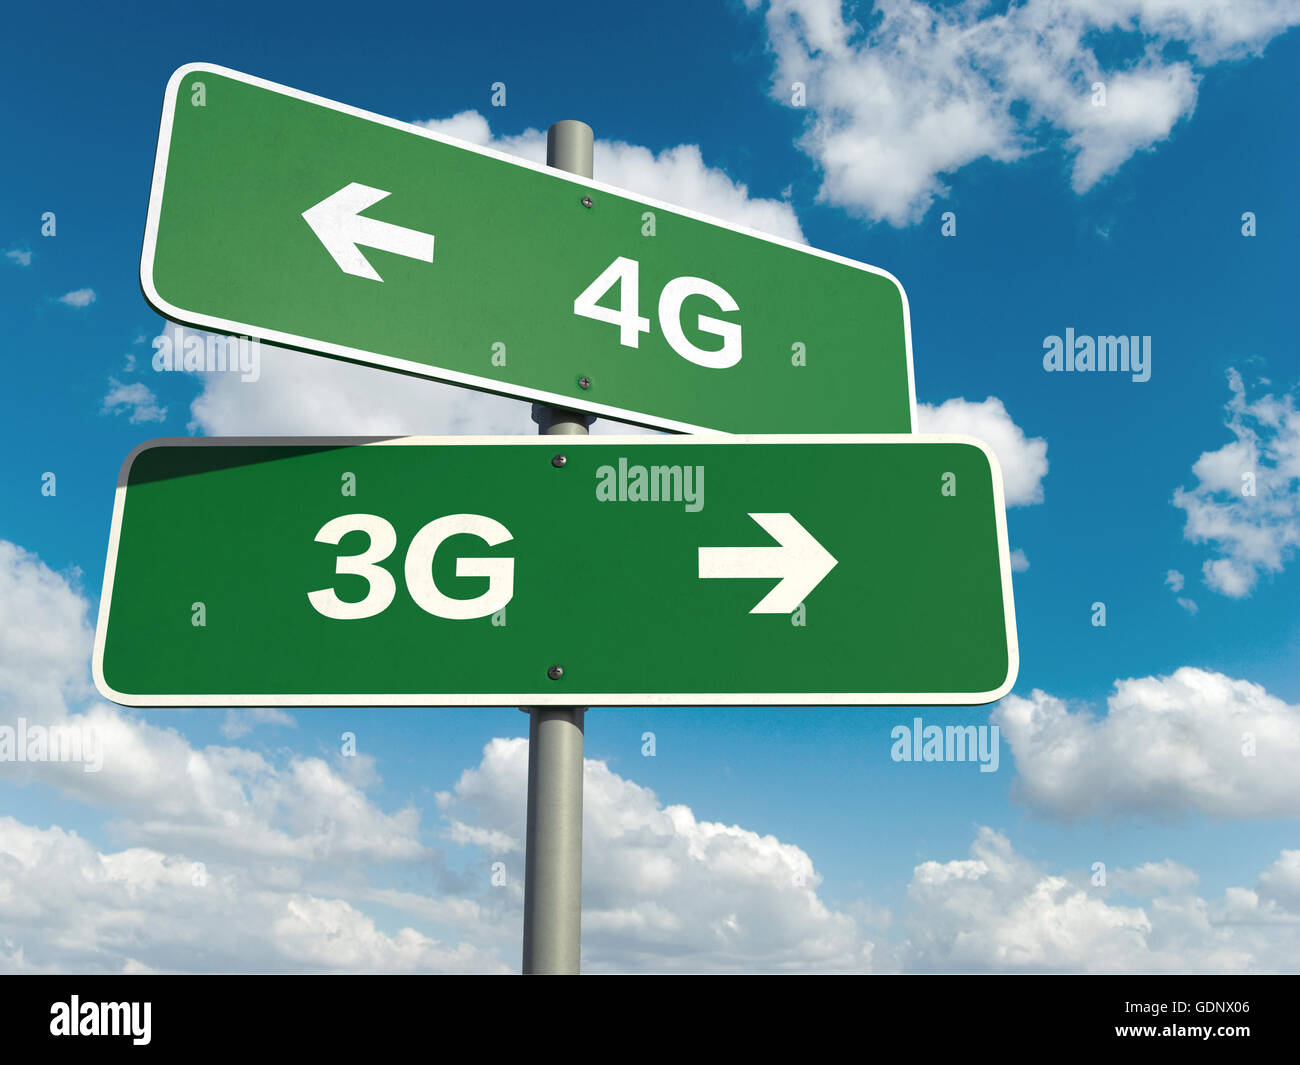 A road sign with 4G 3G words on sky background - Stock Image